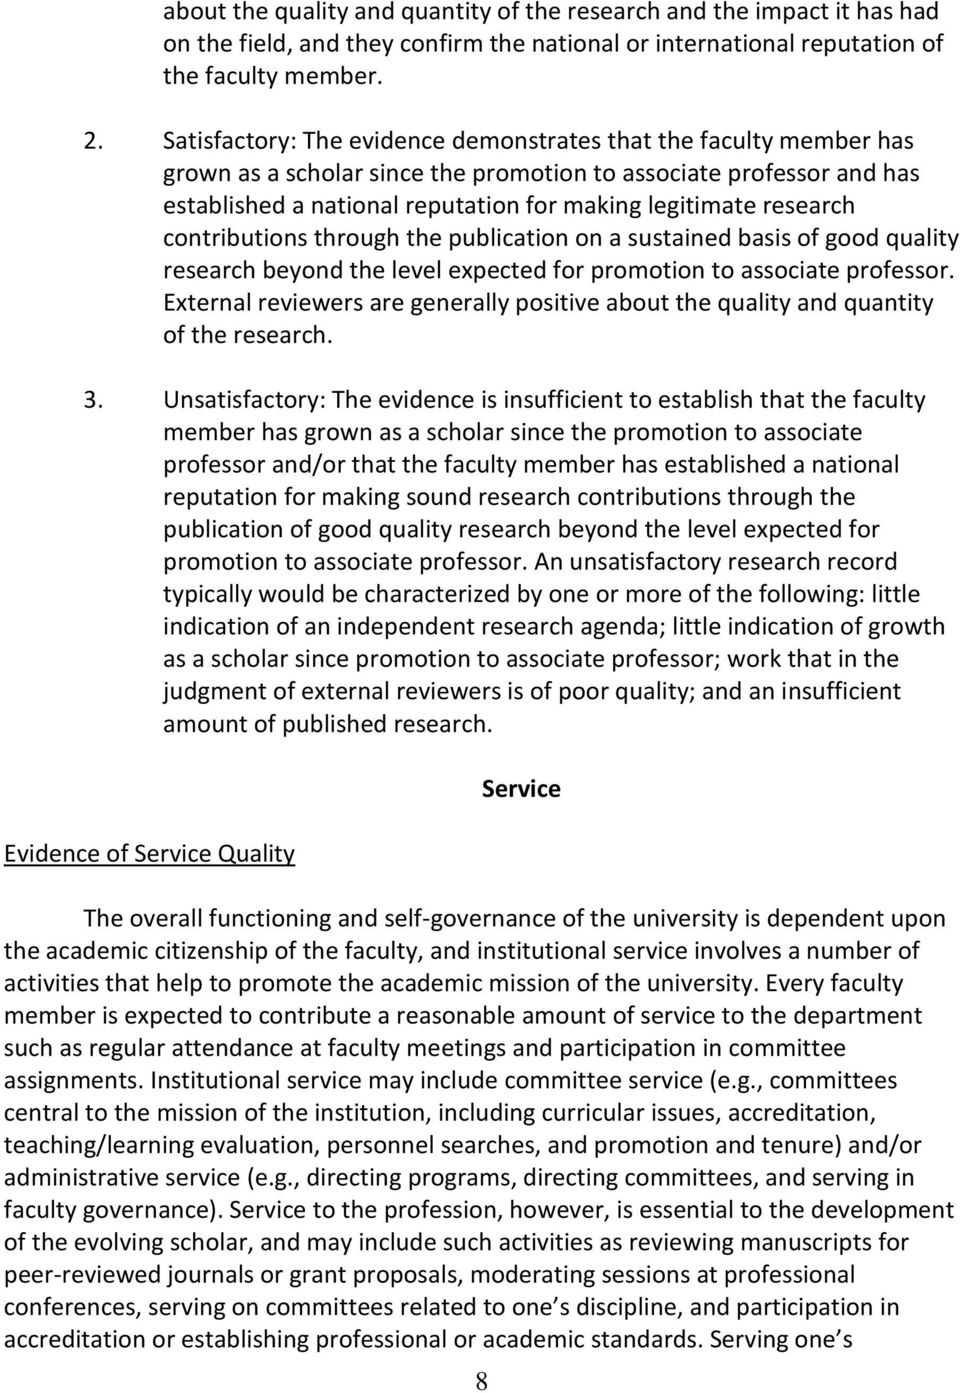 research contributions through the publication on a sustained basis of good quality research beyond the level expected for promotion to associate professor.